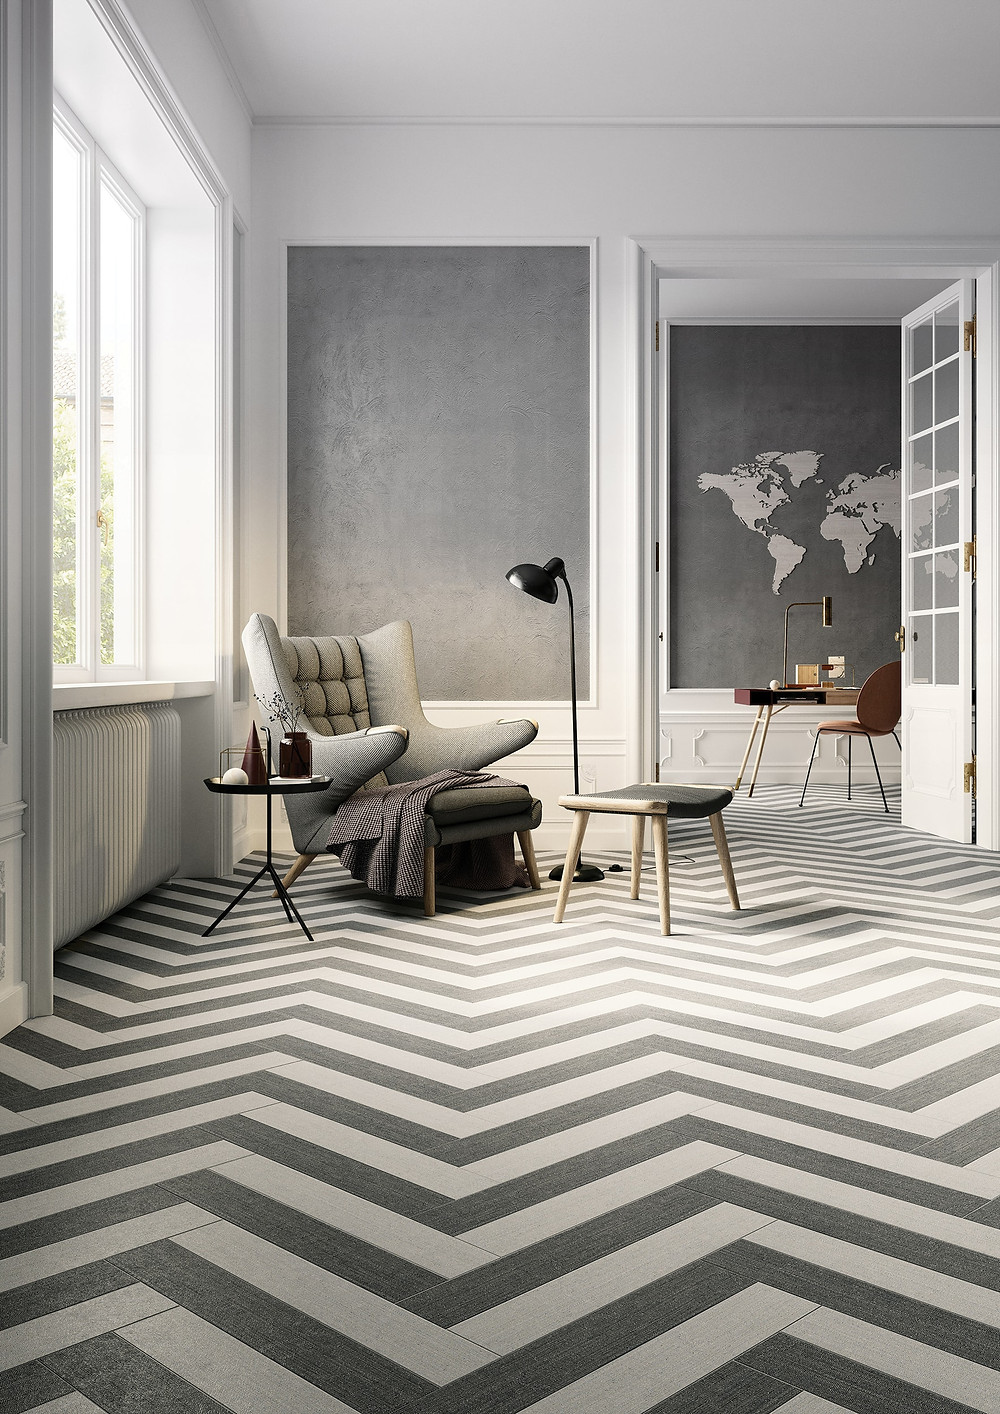 living room with herringbone or zig zag pattern tiles from Gemini Tiles, a papa bear chair and grey walls. Gubi Beetle chair in the background.